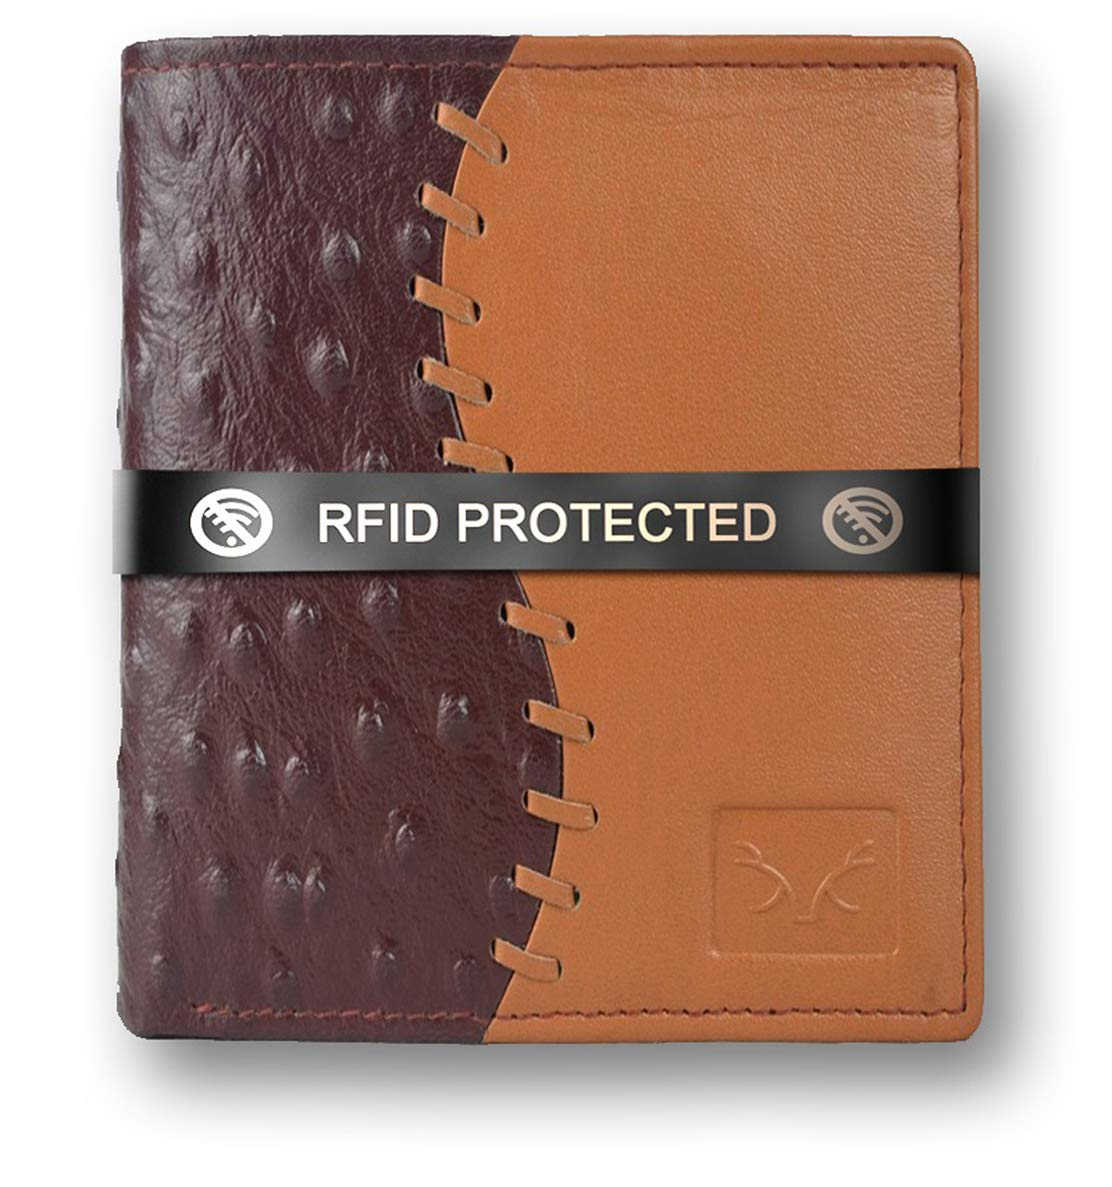 Stylish Brown and Tan RFID Protected Genuine Leather Wallet